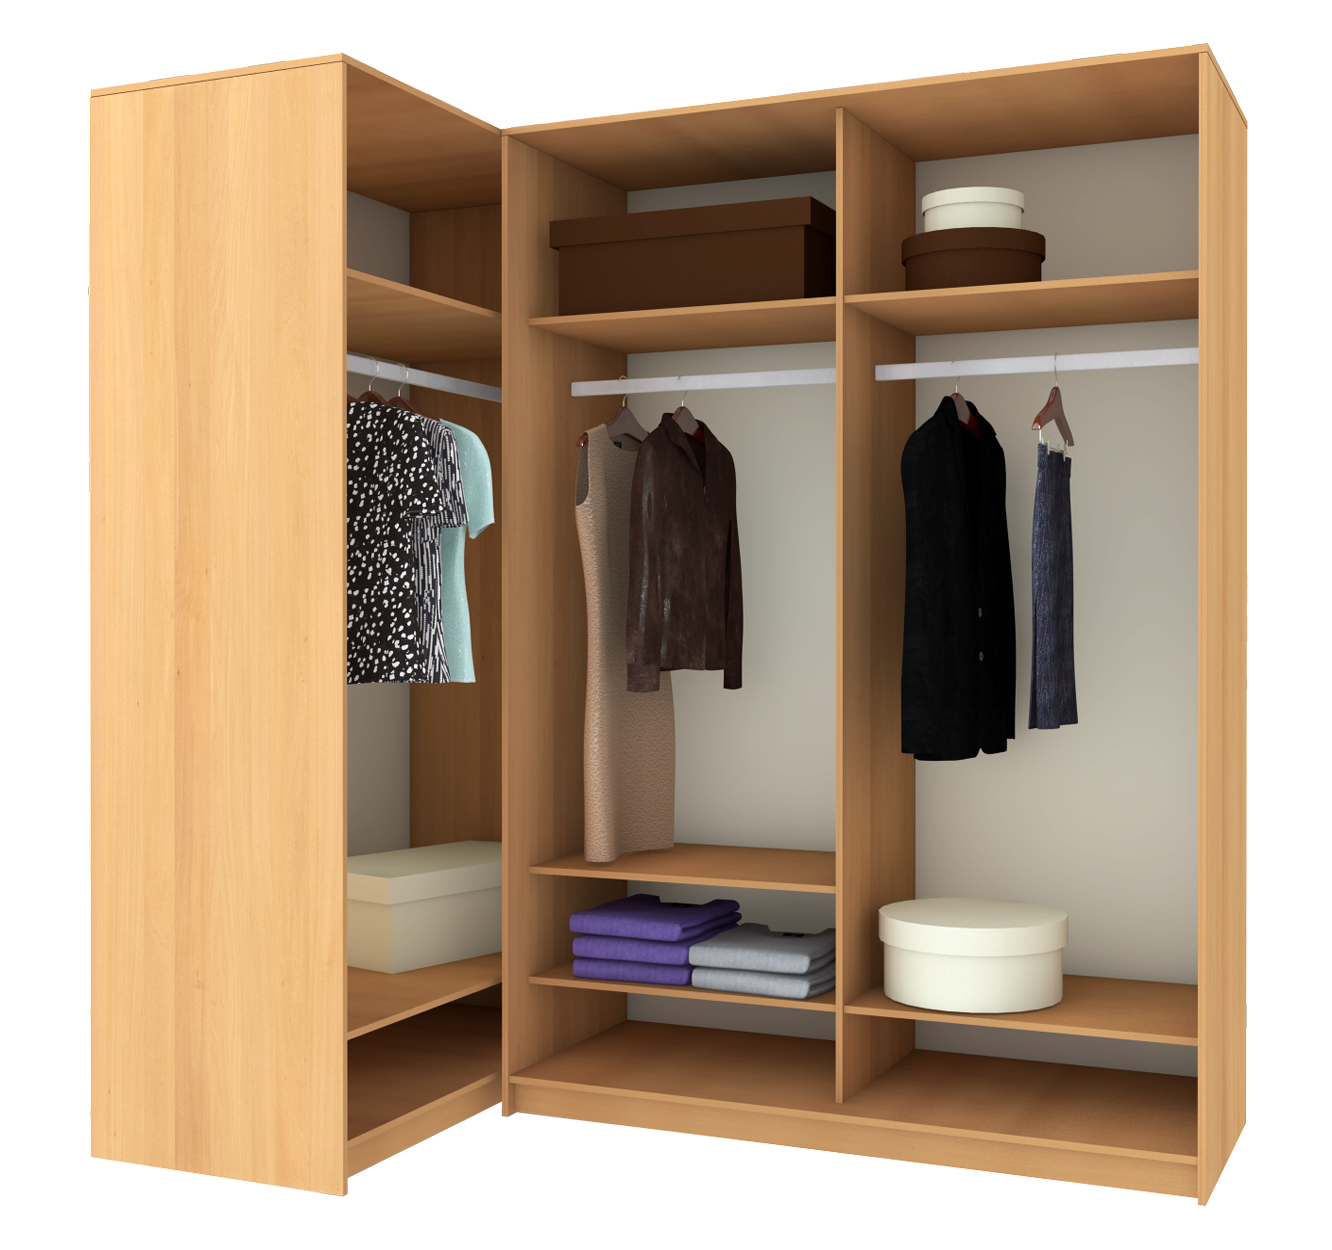 Cupboard png images free. Furniture clipart closet